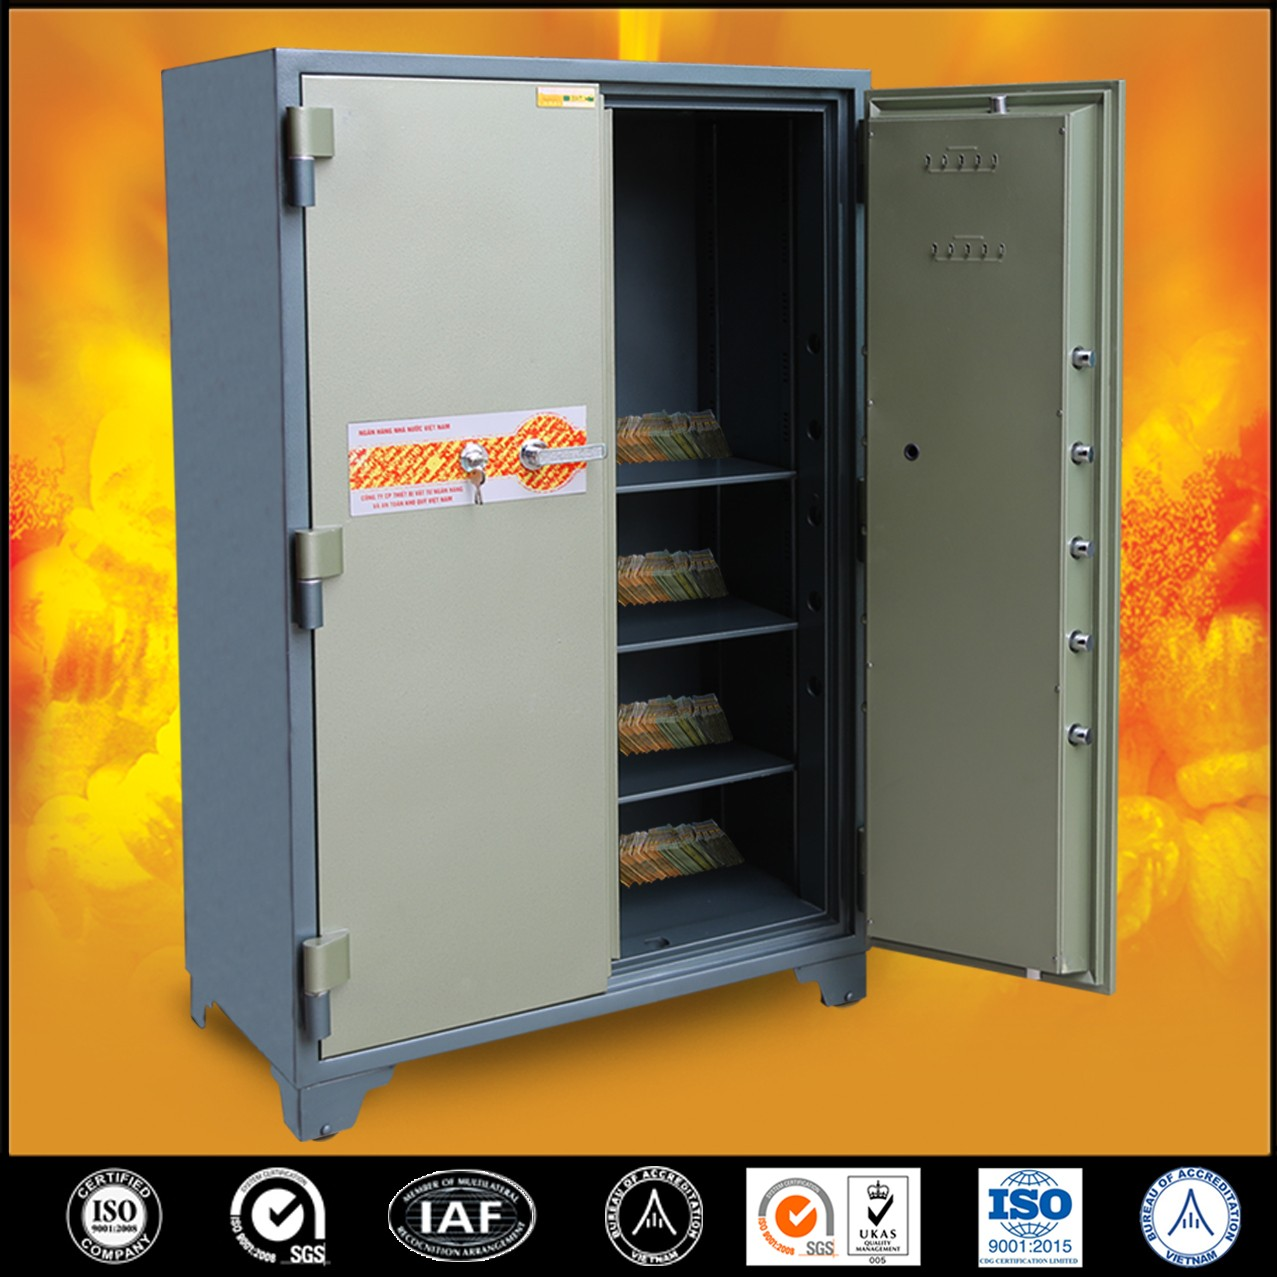 Bank Safes LX1650 DK Two Door Best Quality Security Safes